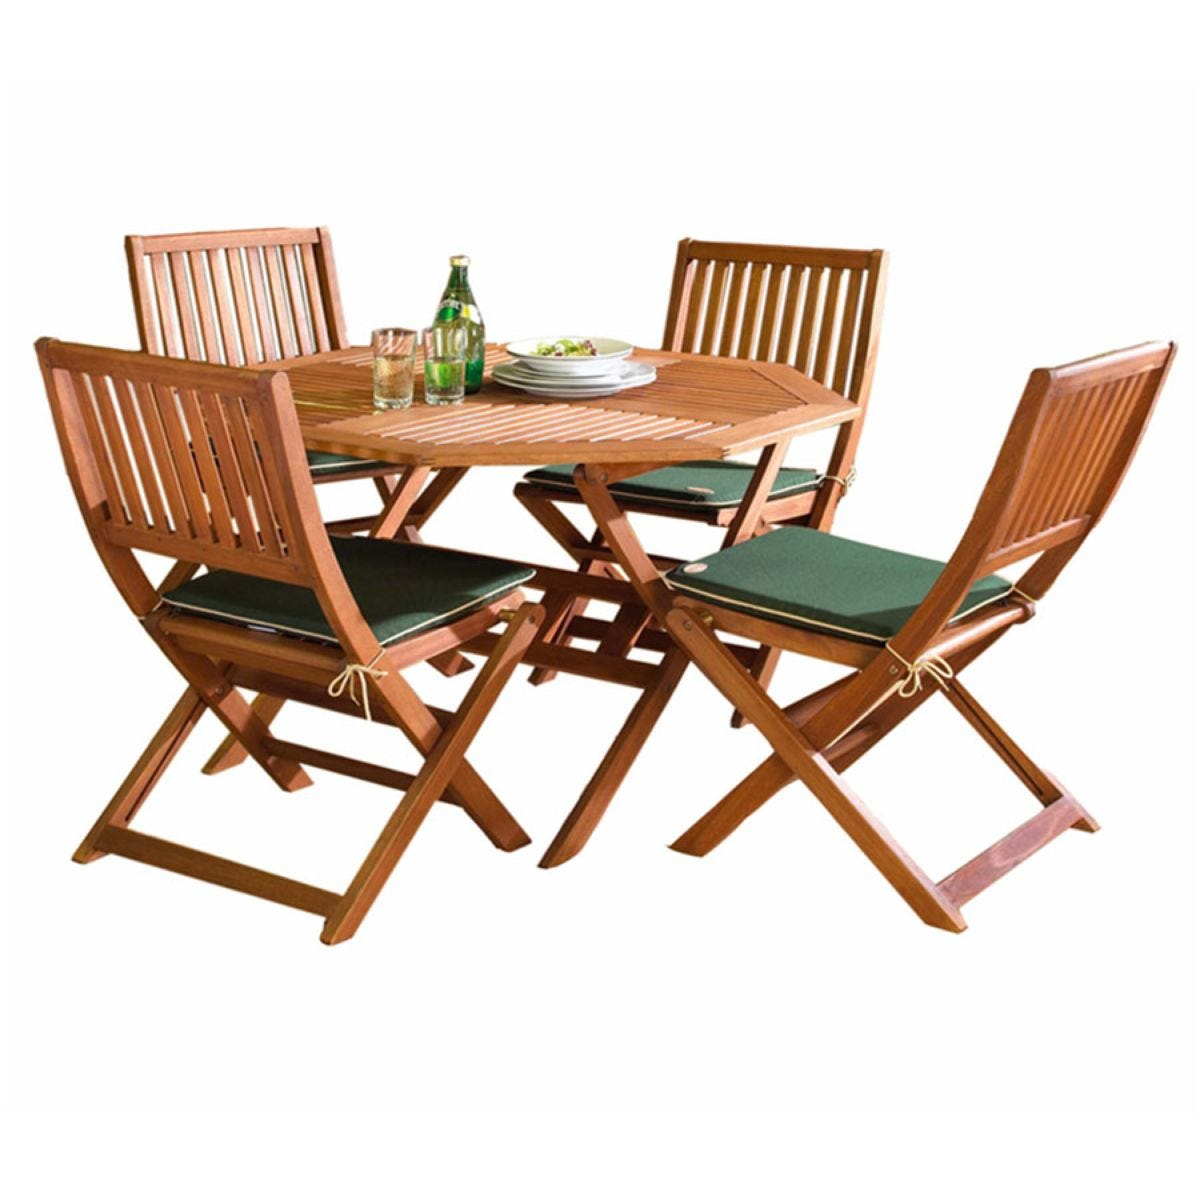 Robert Dyas FSC Country Hardwood Outdoor Table - 110cm